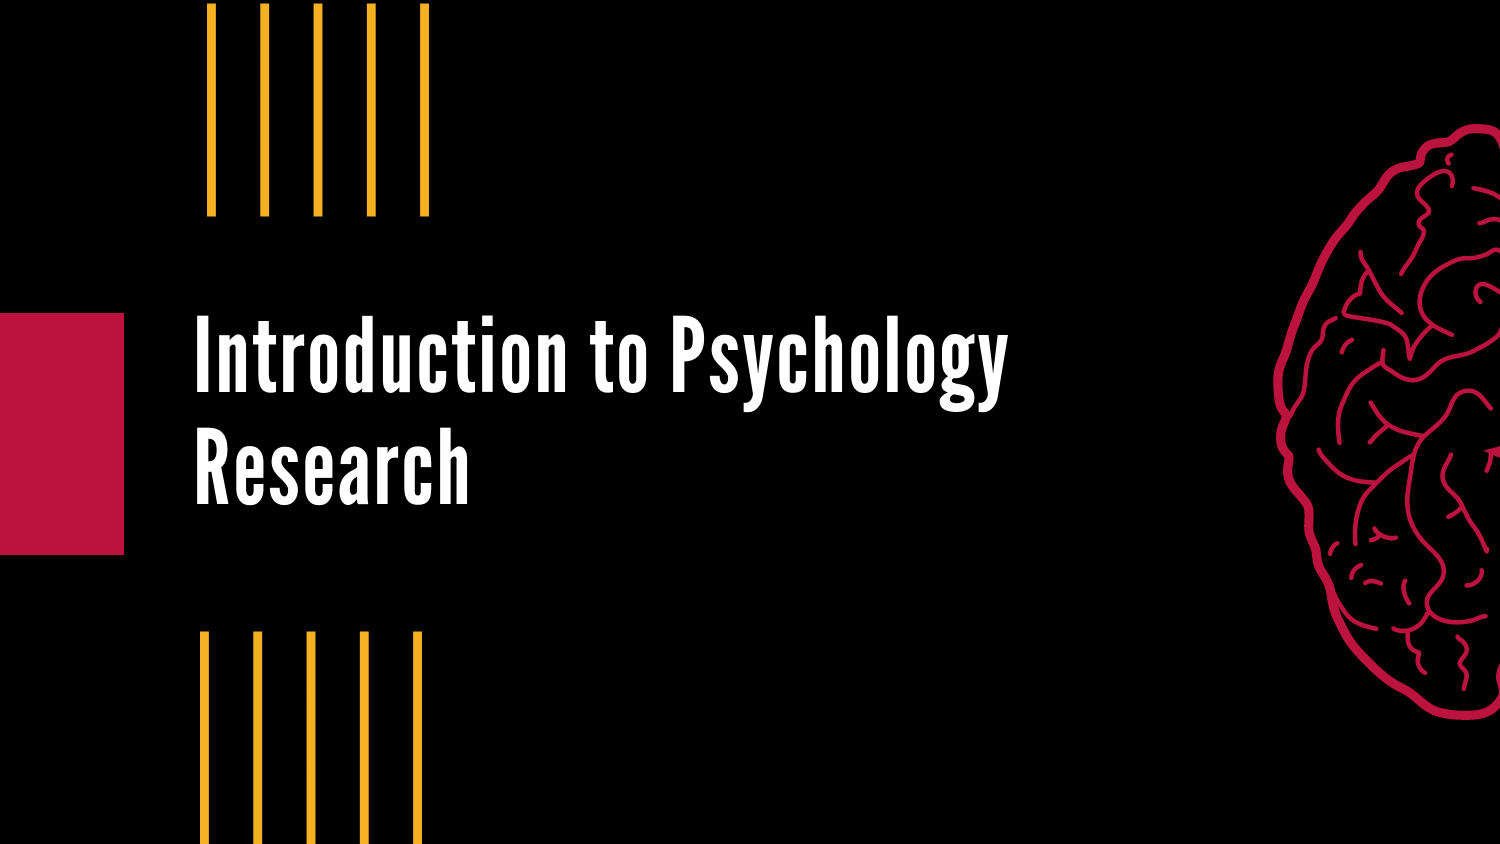 Introduction to Psychology Research Cover Image